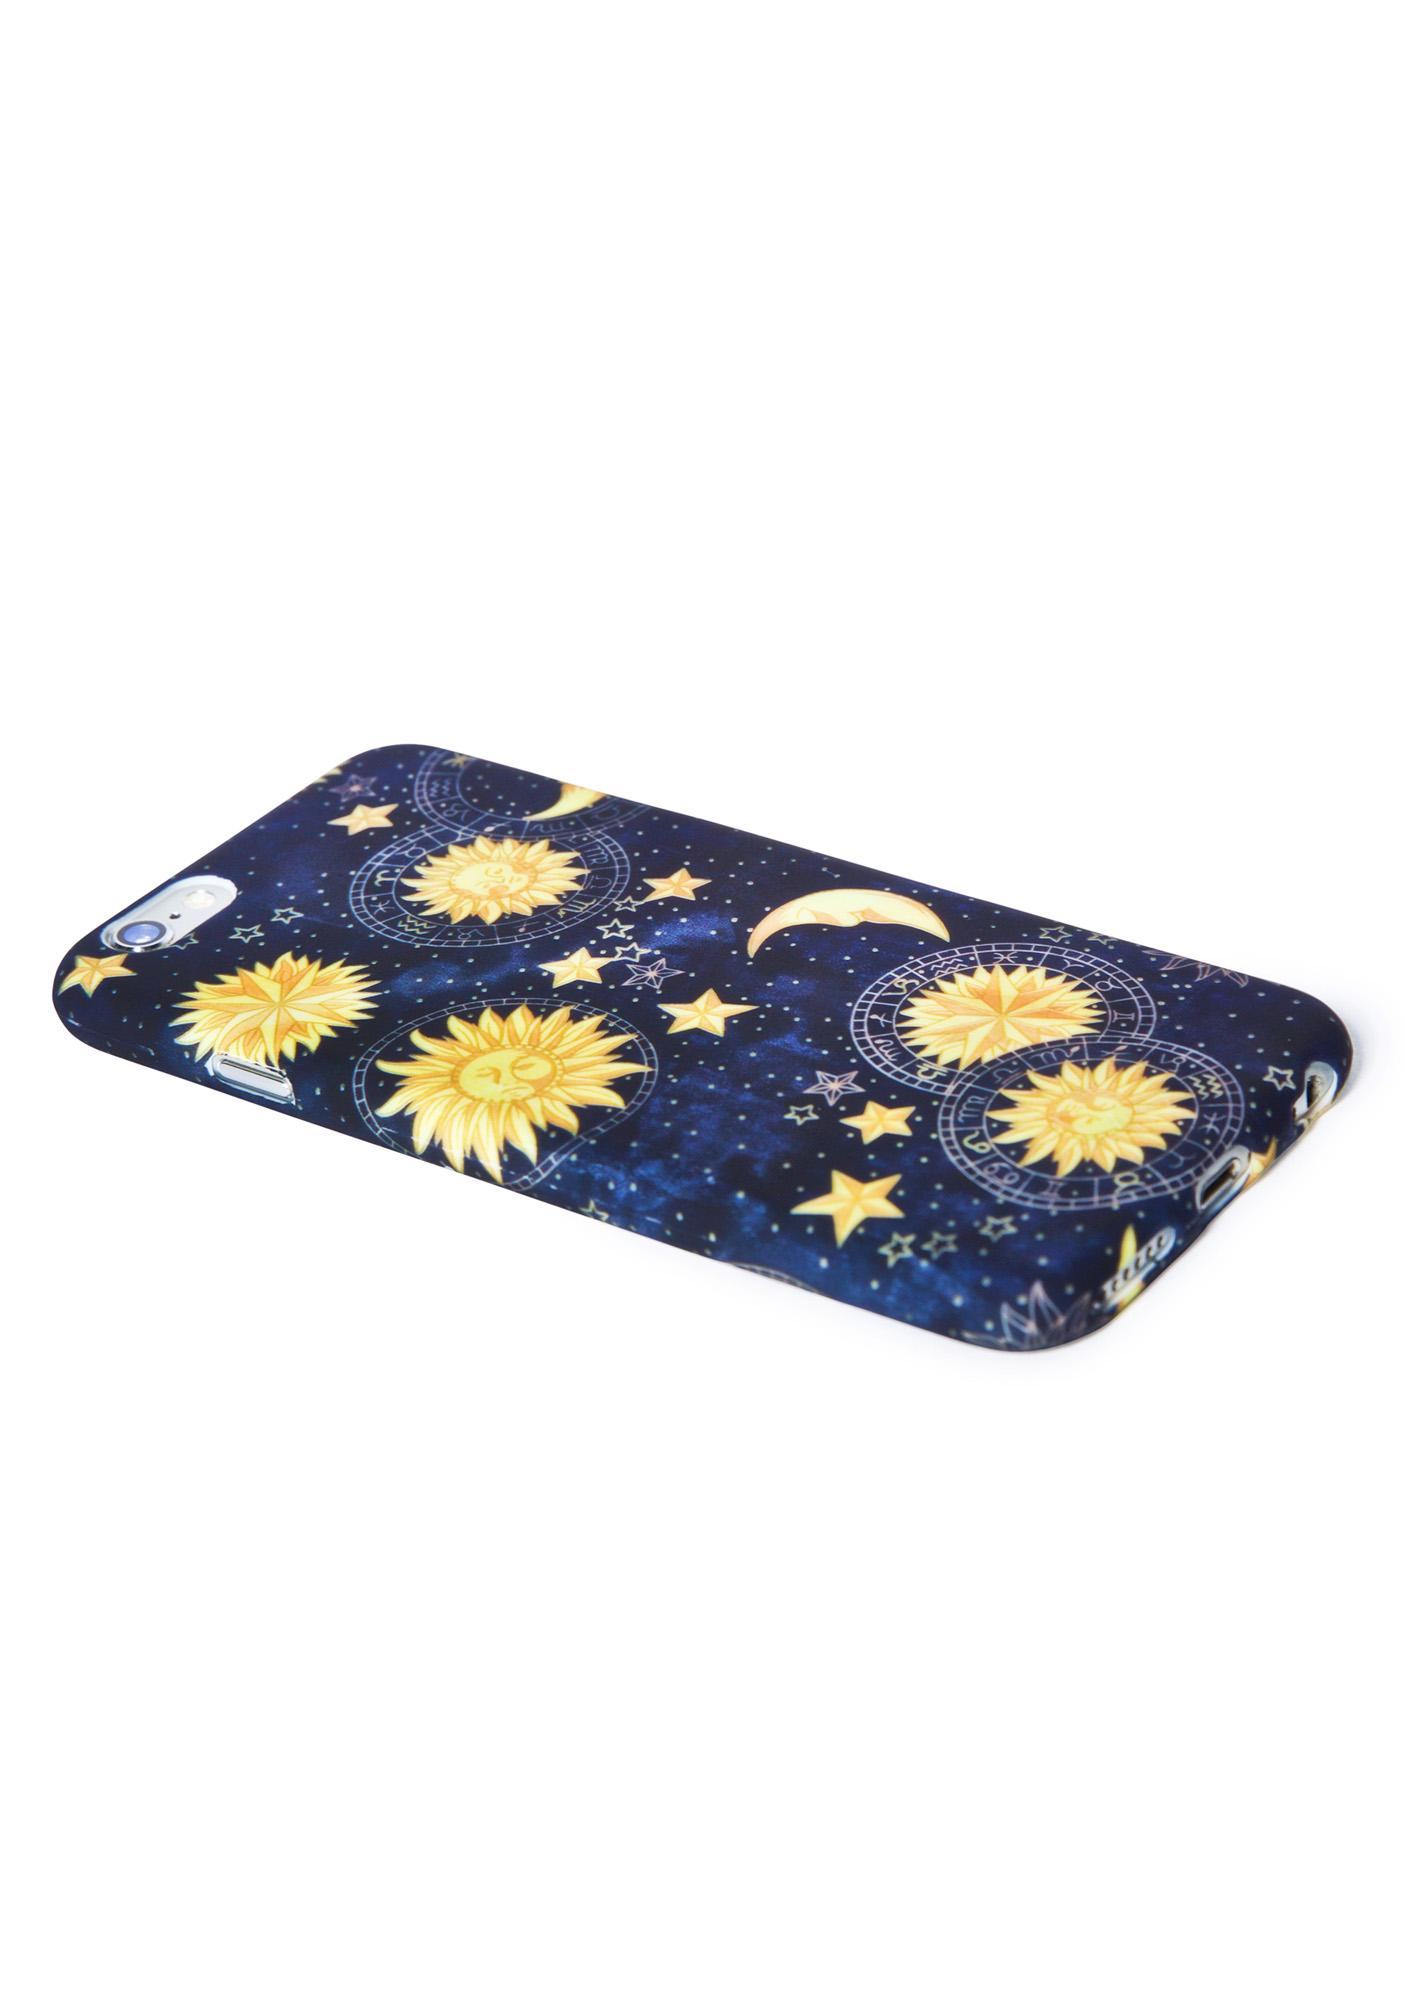 The Night Sky iPhone 6 Case